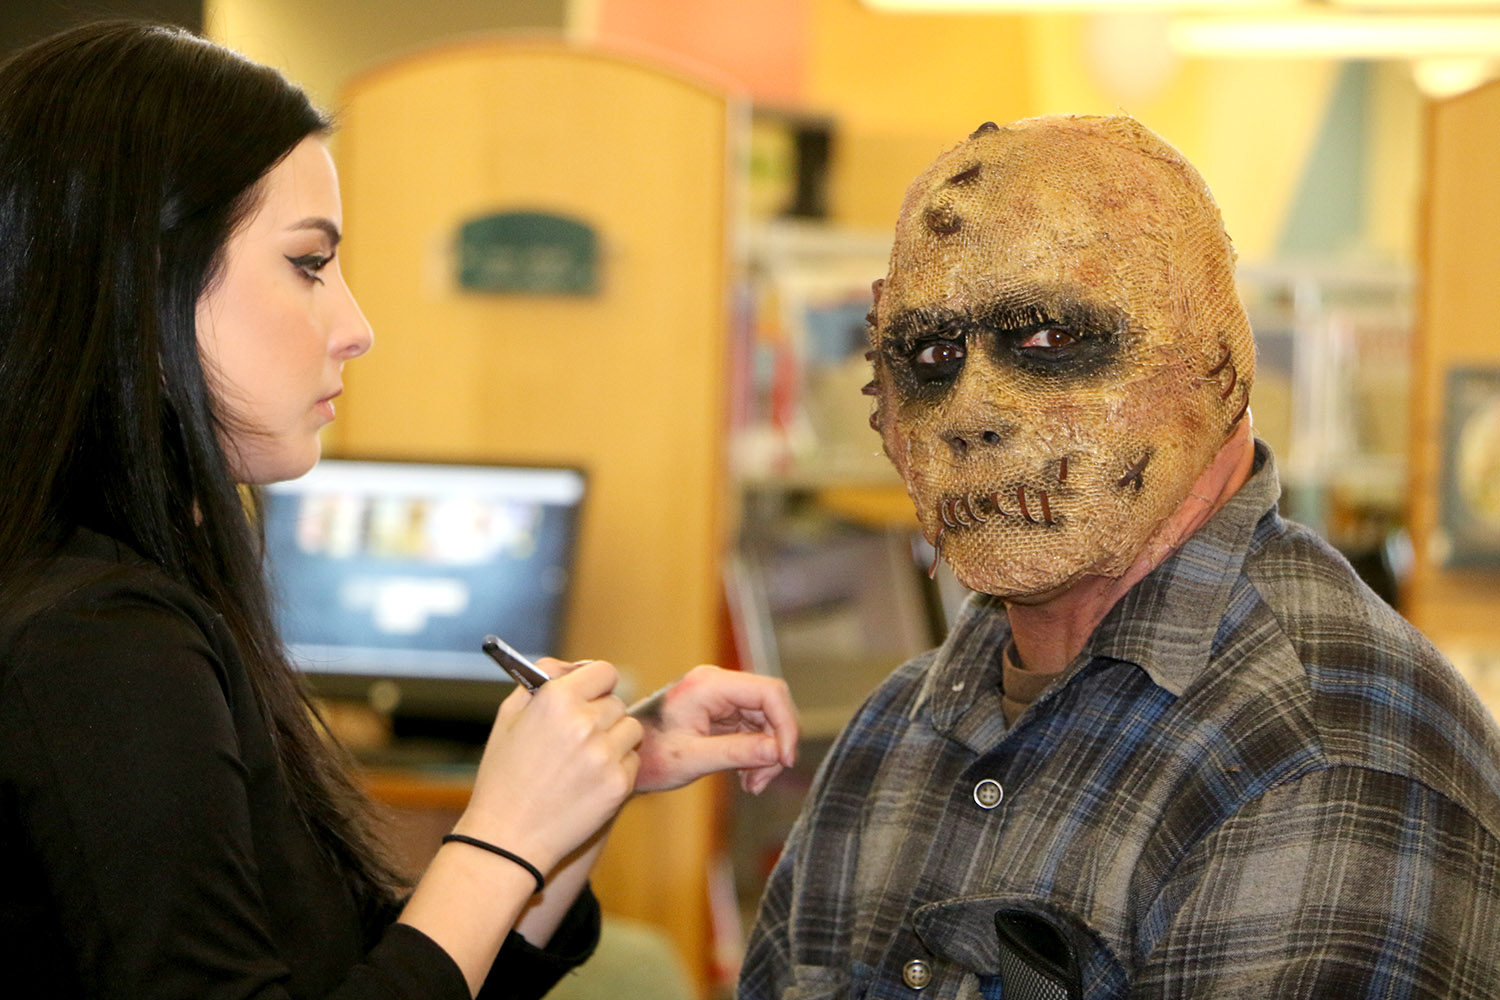 Makeup artist applying a mask to mans face